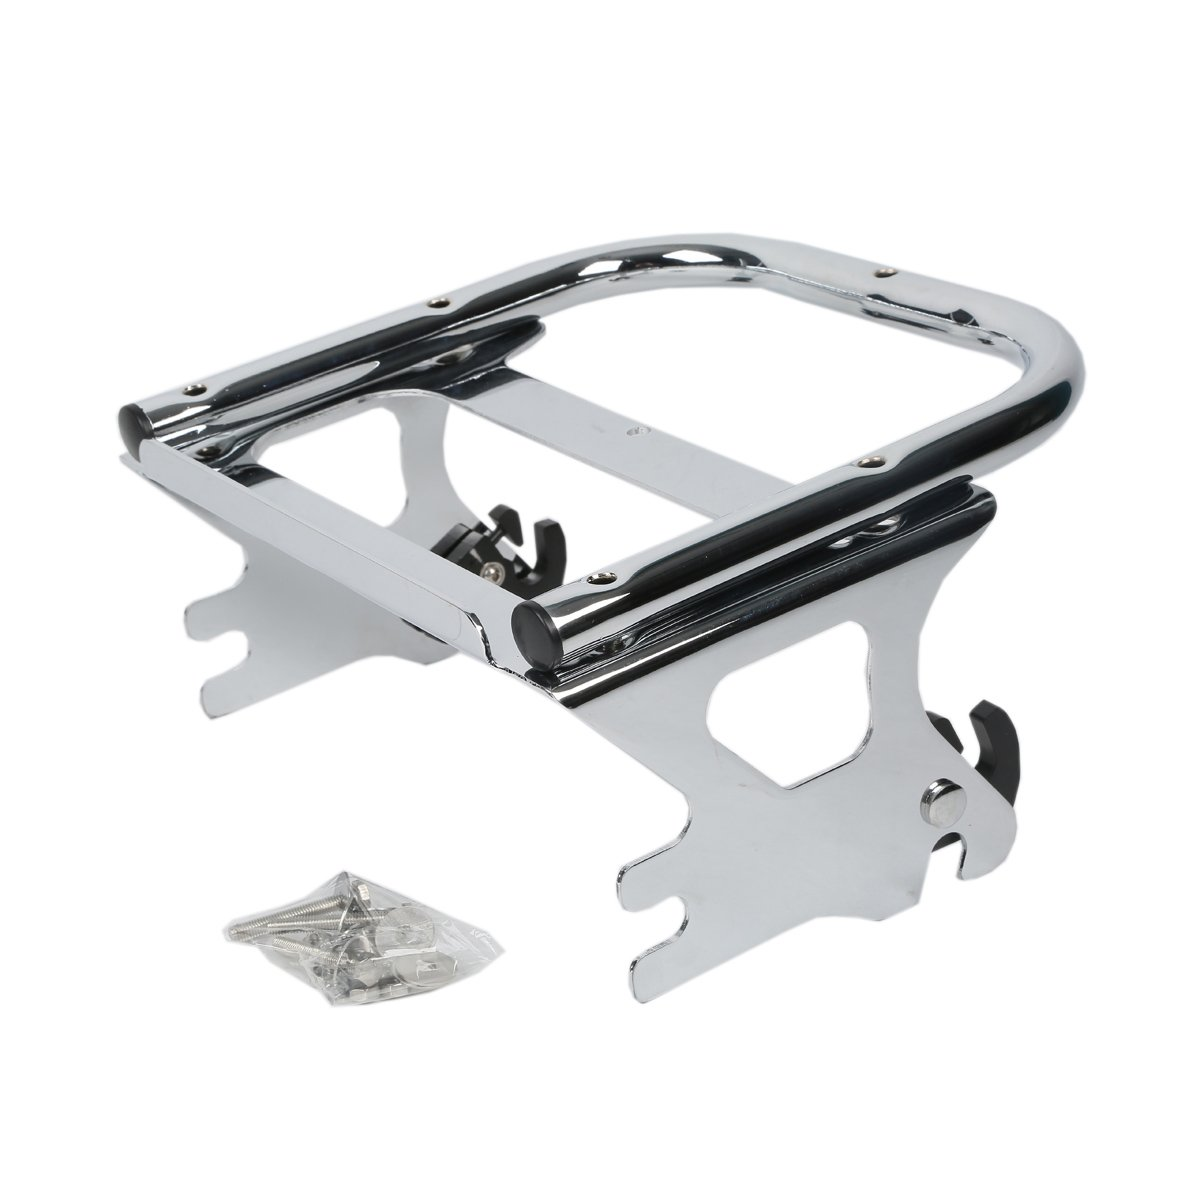 XMT-MOTO Detachable Two-up Tour Pak Pack Mounting Luggage Rack For Harley Touring Road King, FLHT, FLHX, FLTR 1997- 2008